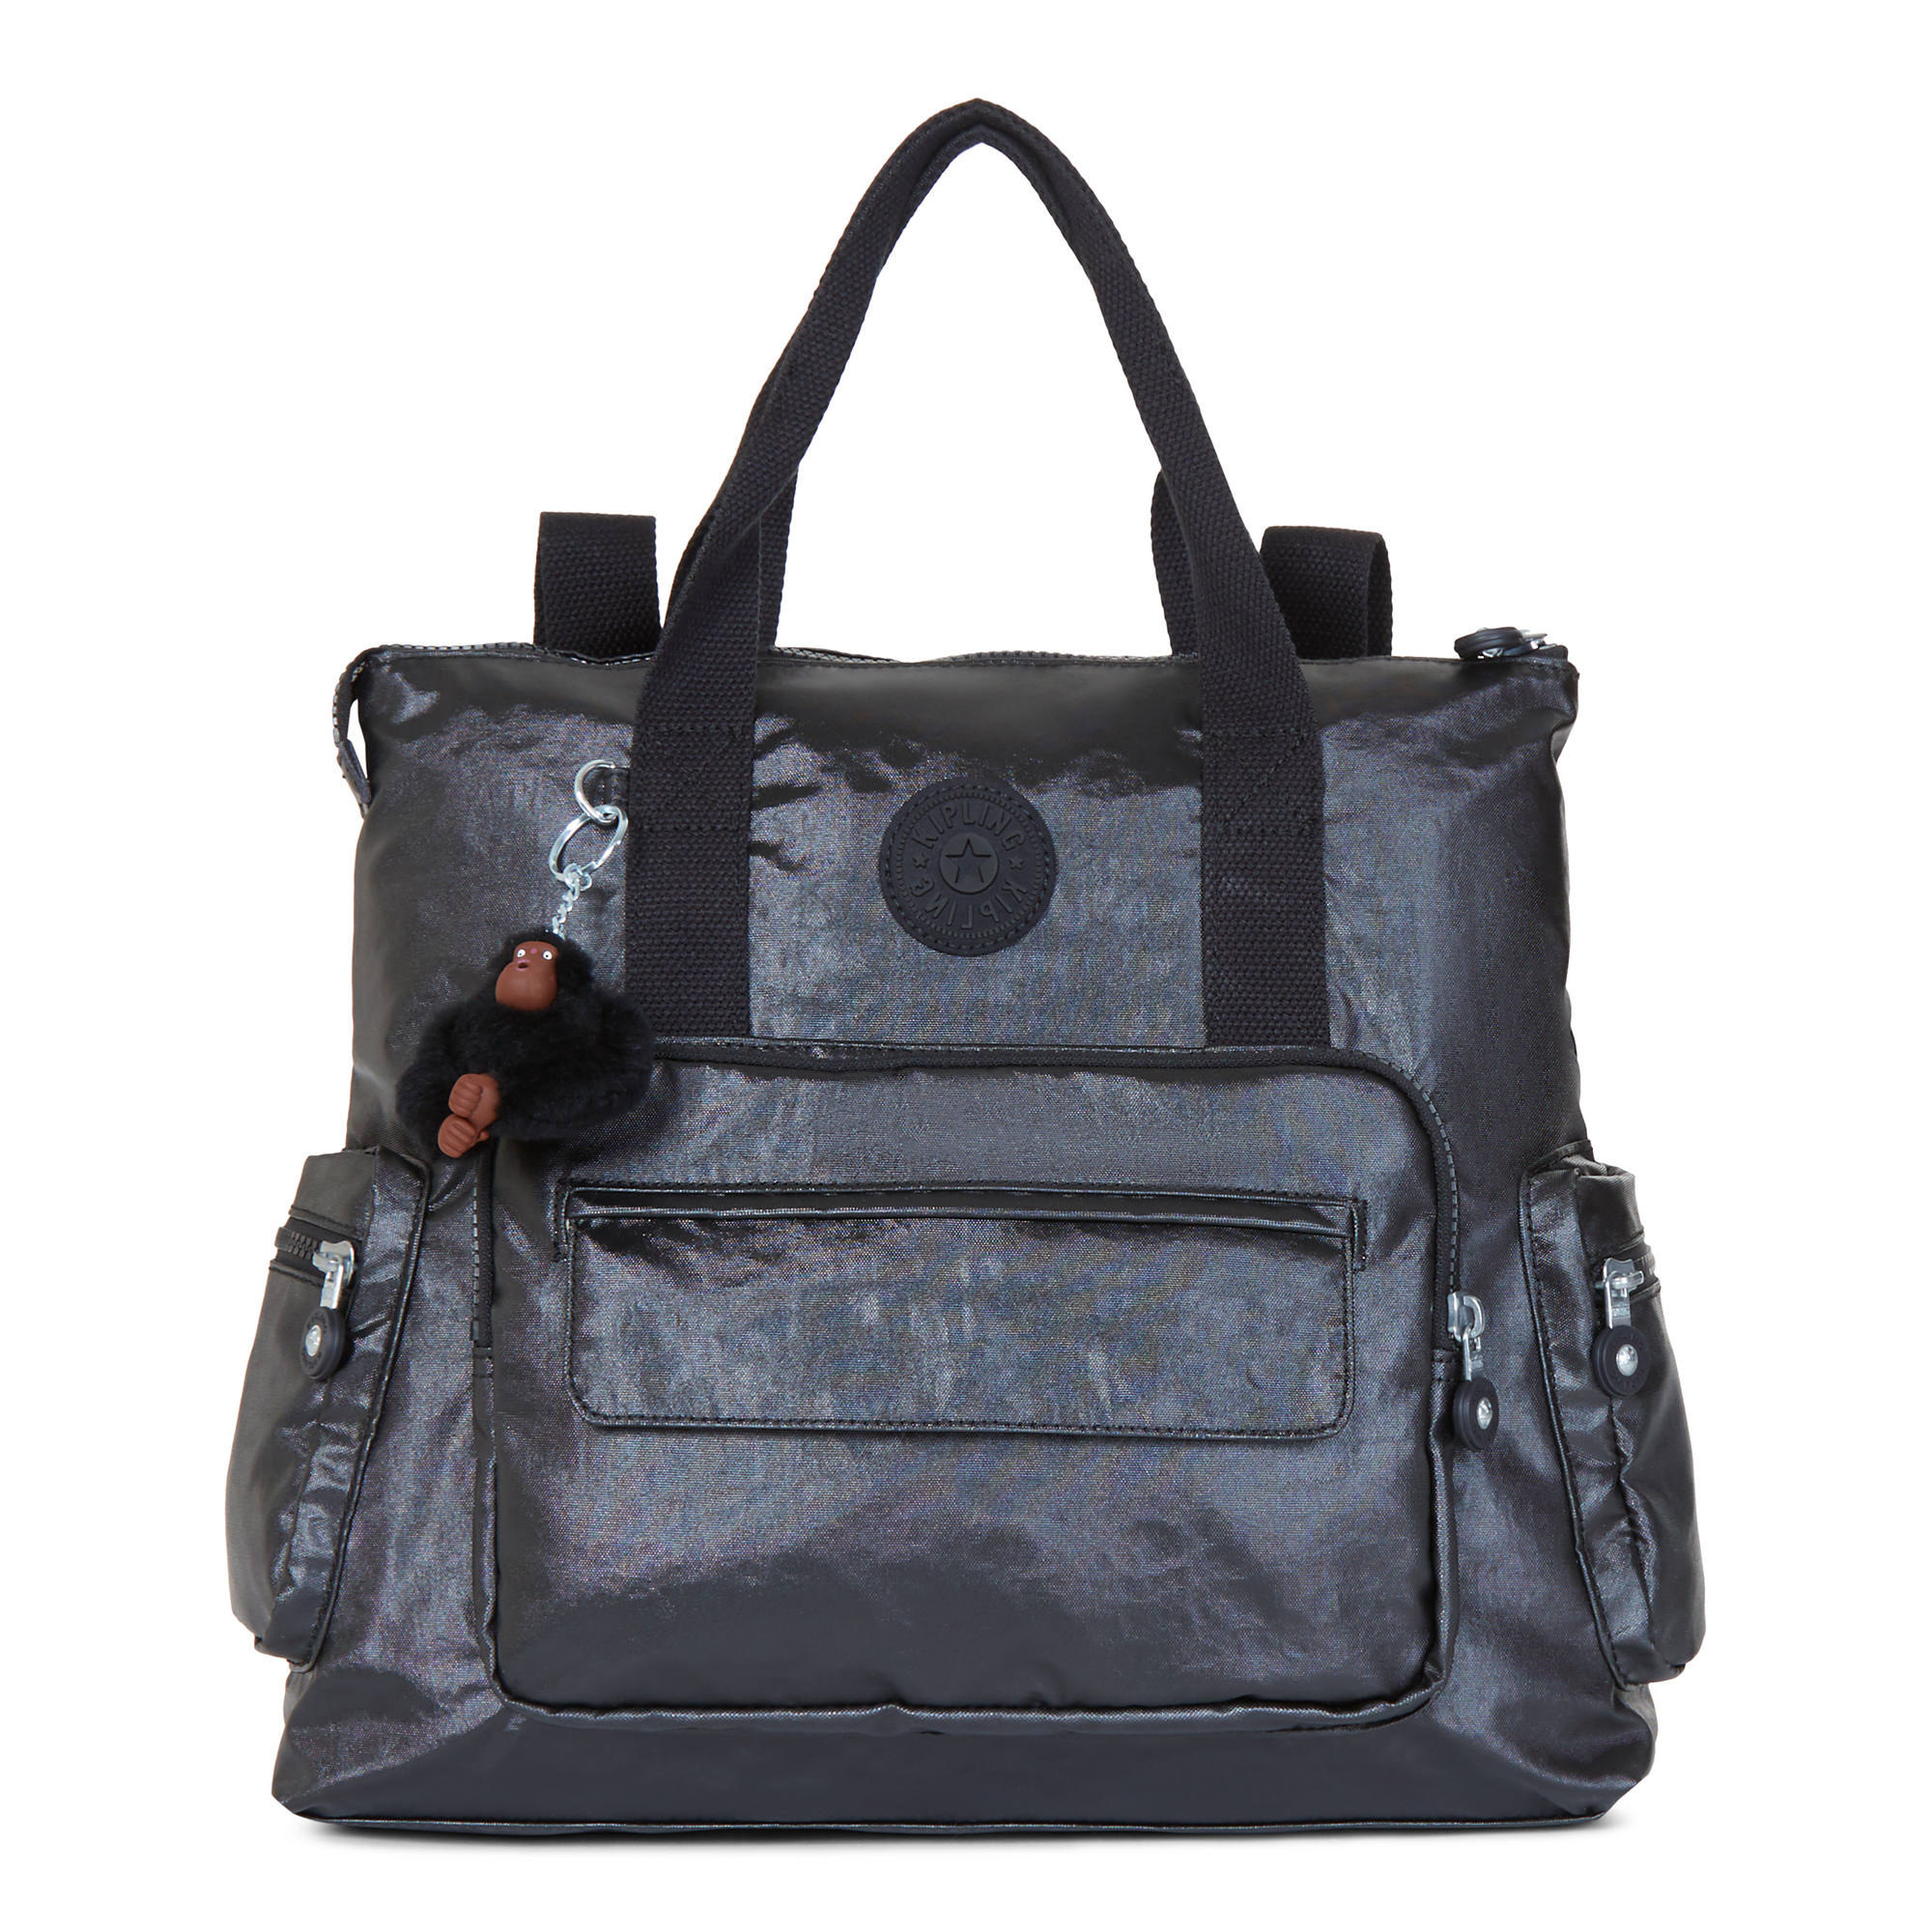 31c9d84b0cba Alvy 2-in-1 Convertible Tote Bag Backpack